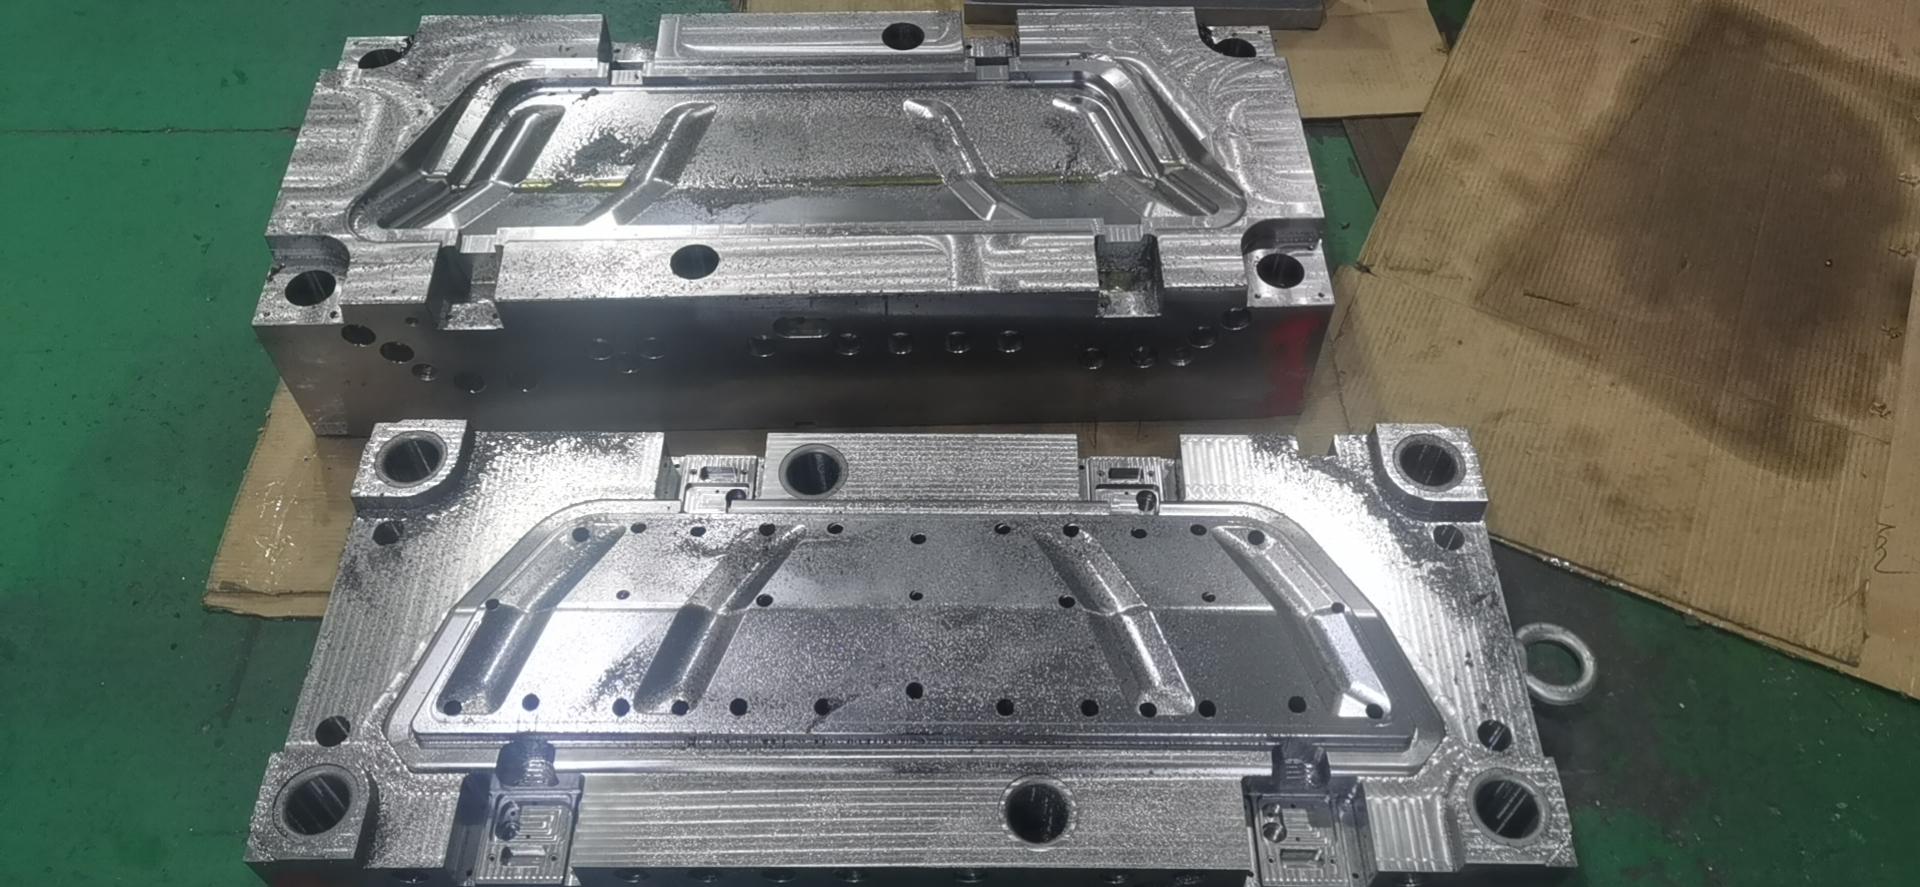 What is principle, characteristics, application and process of injection molding?